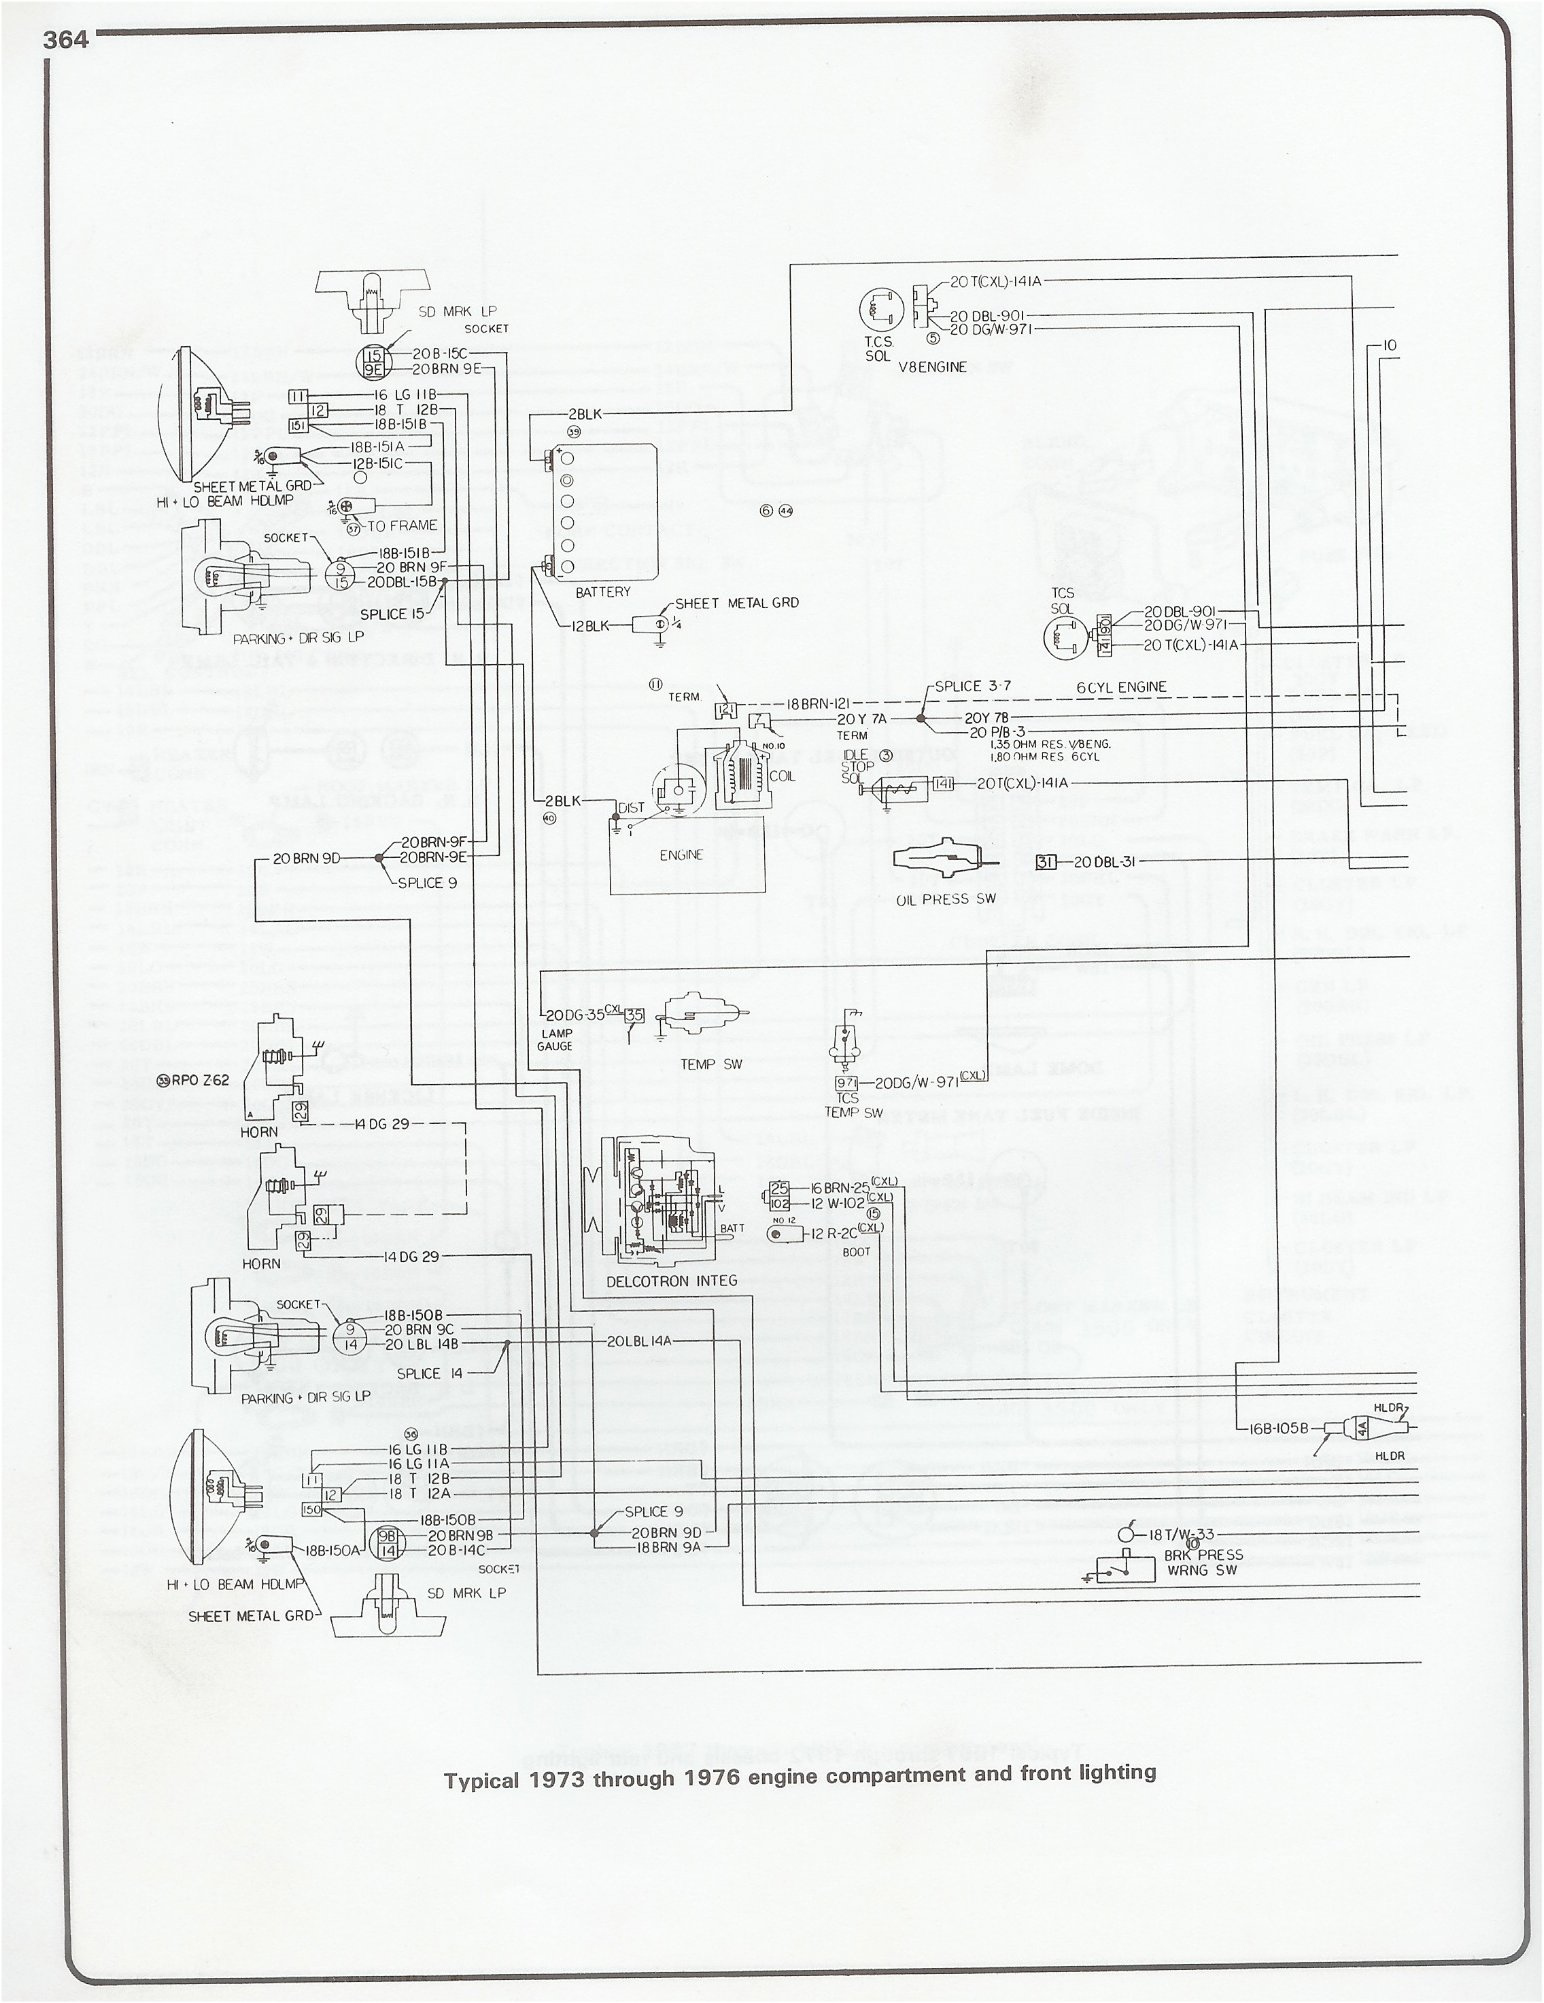 78 scottsdale headlight wiring diagram